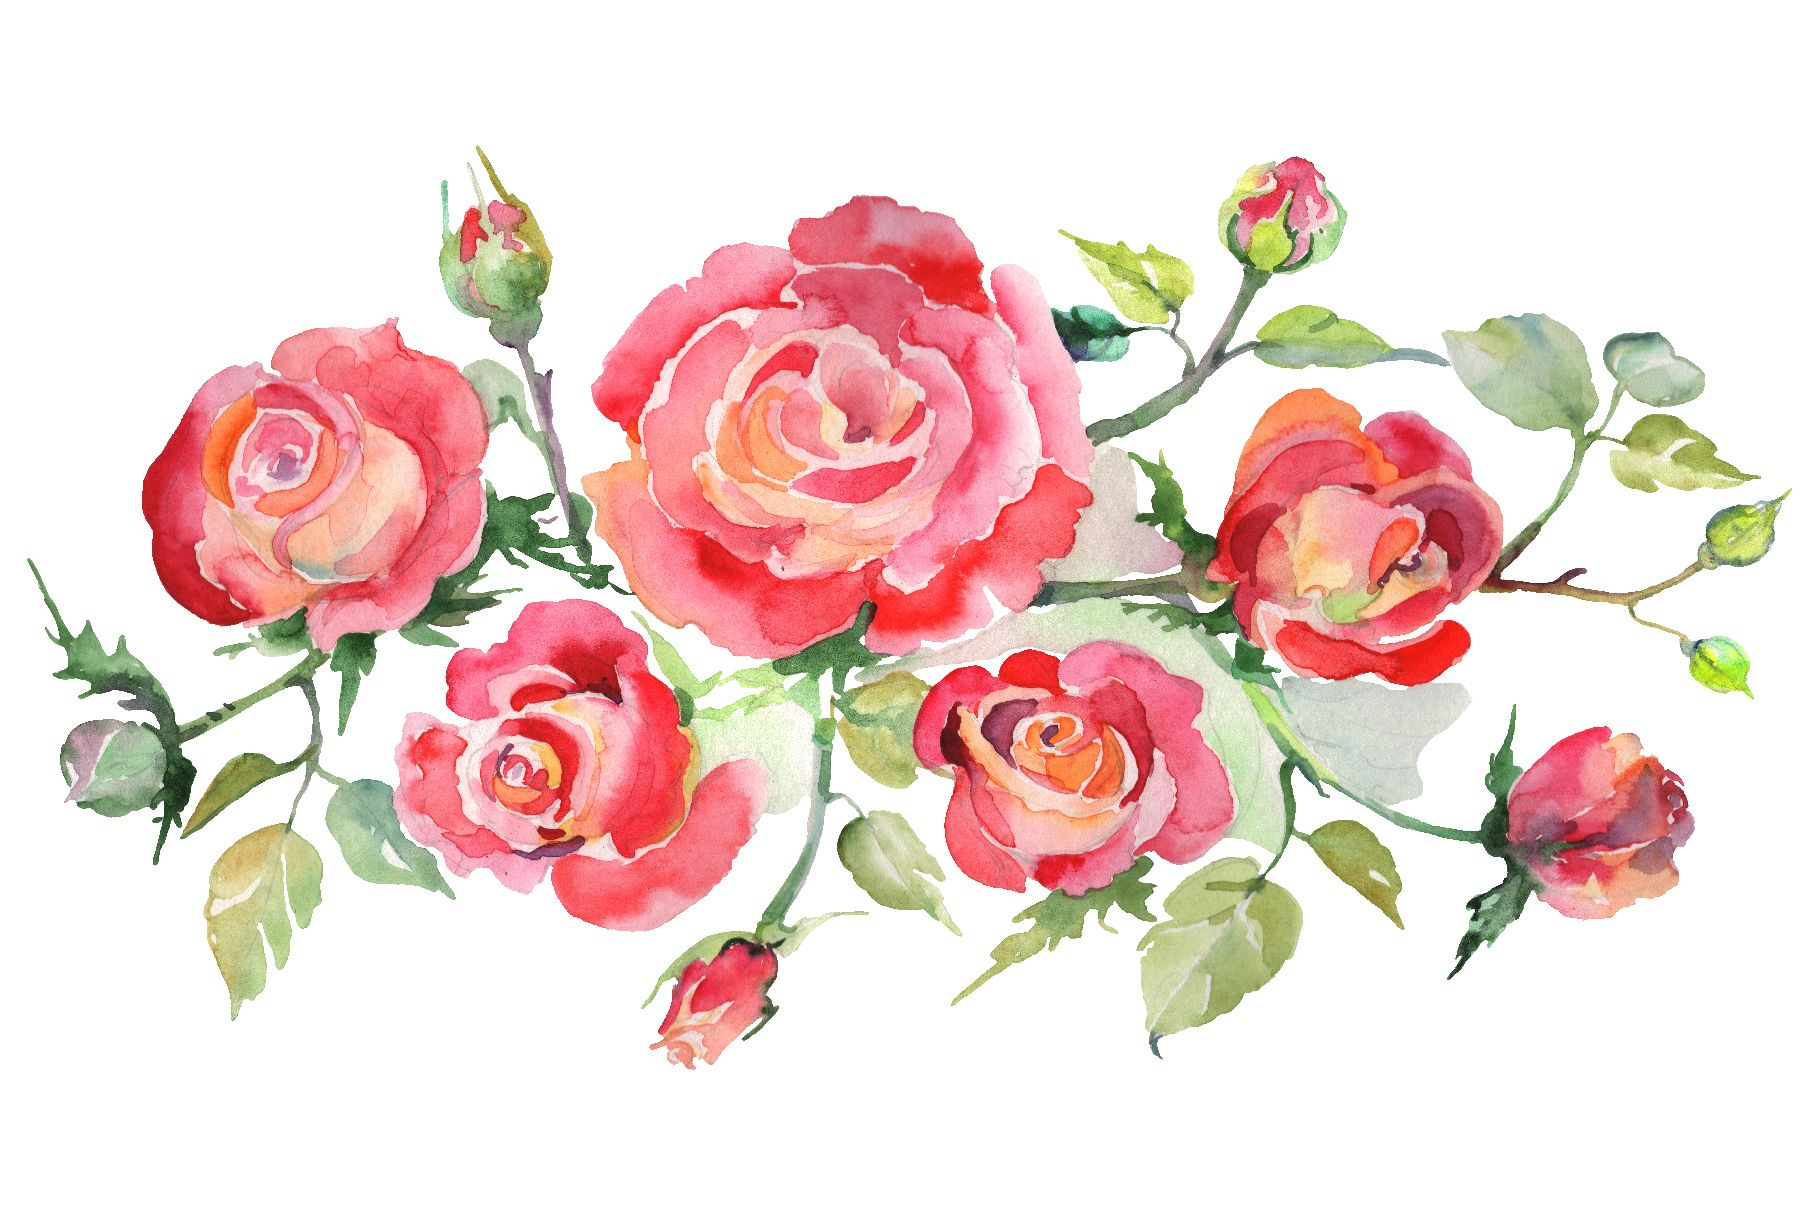 Bouquet With Roses Red Watercolor Png Graphic By Mystocks Creative Fabrica Watercolor Watercolor Rose Illustration